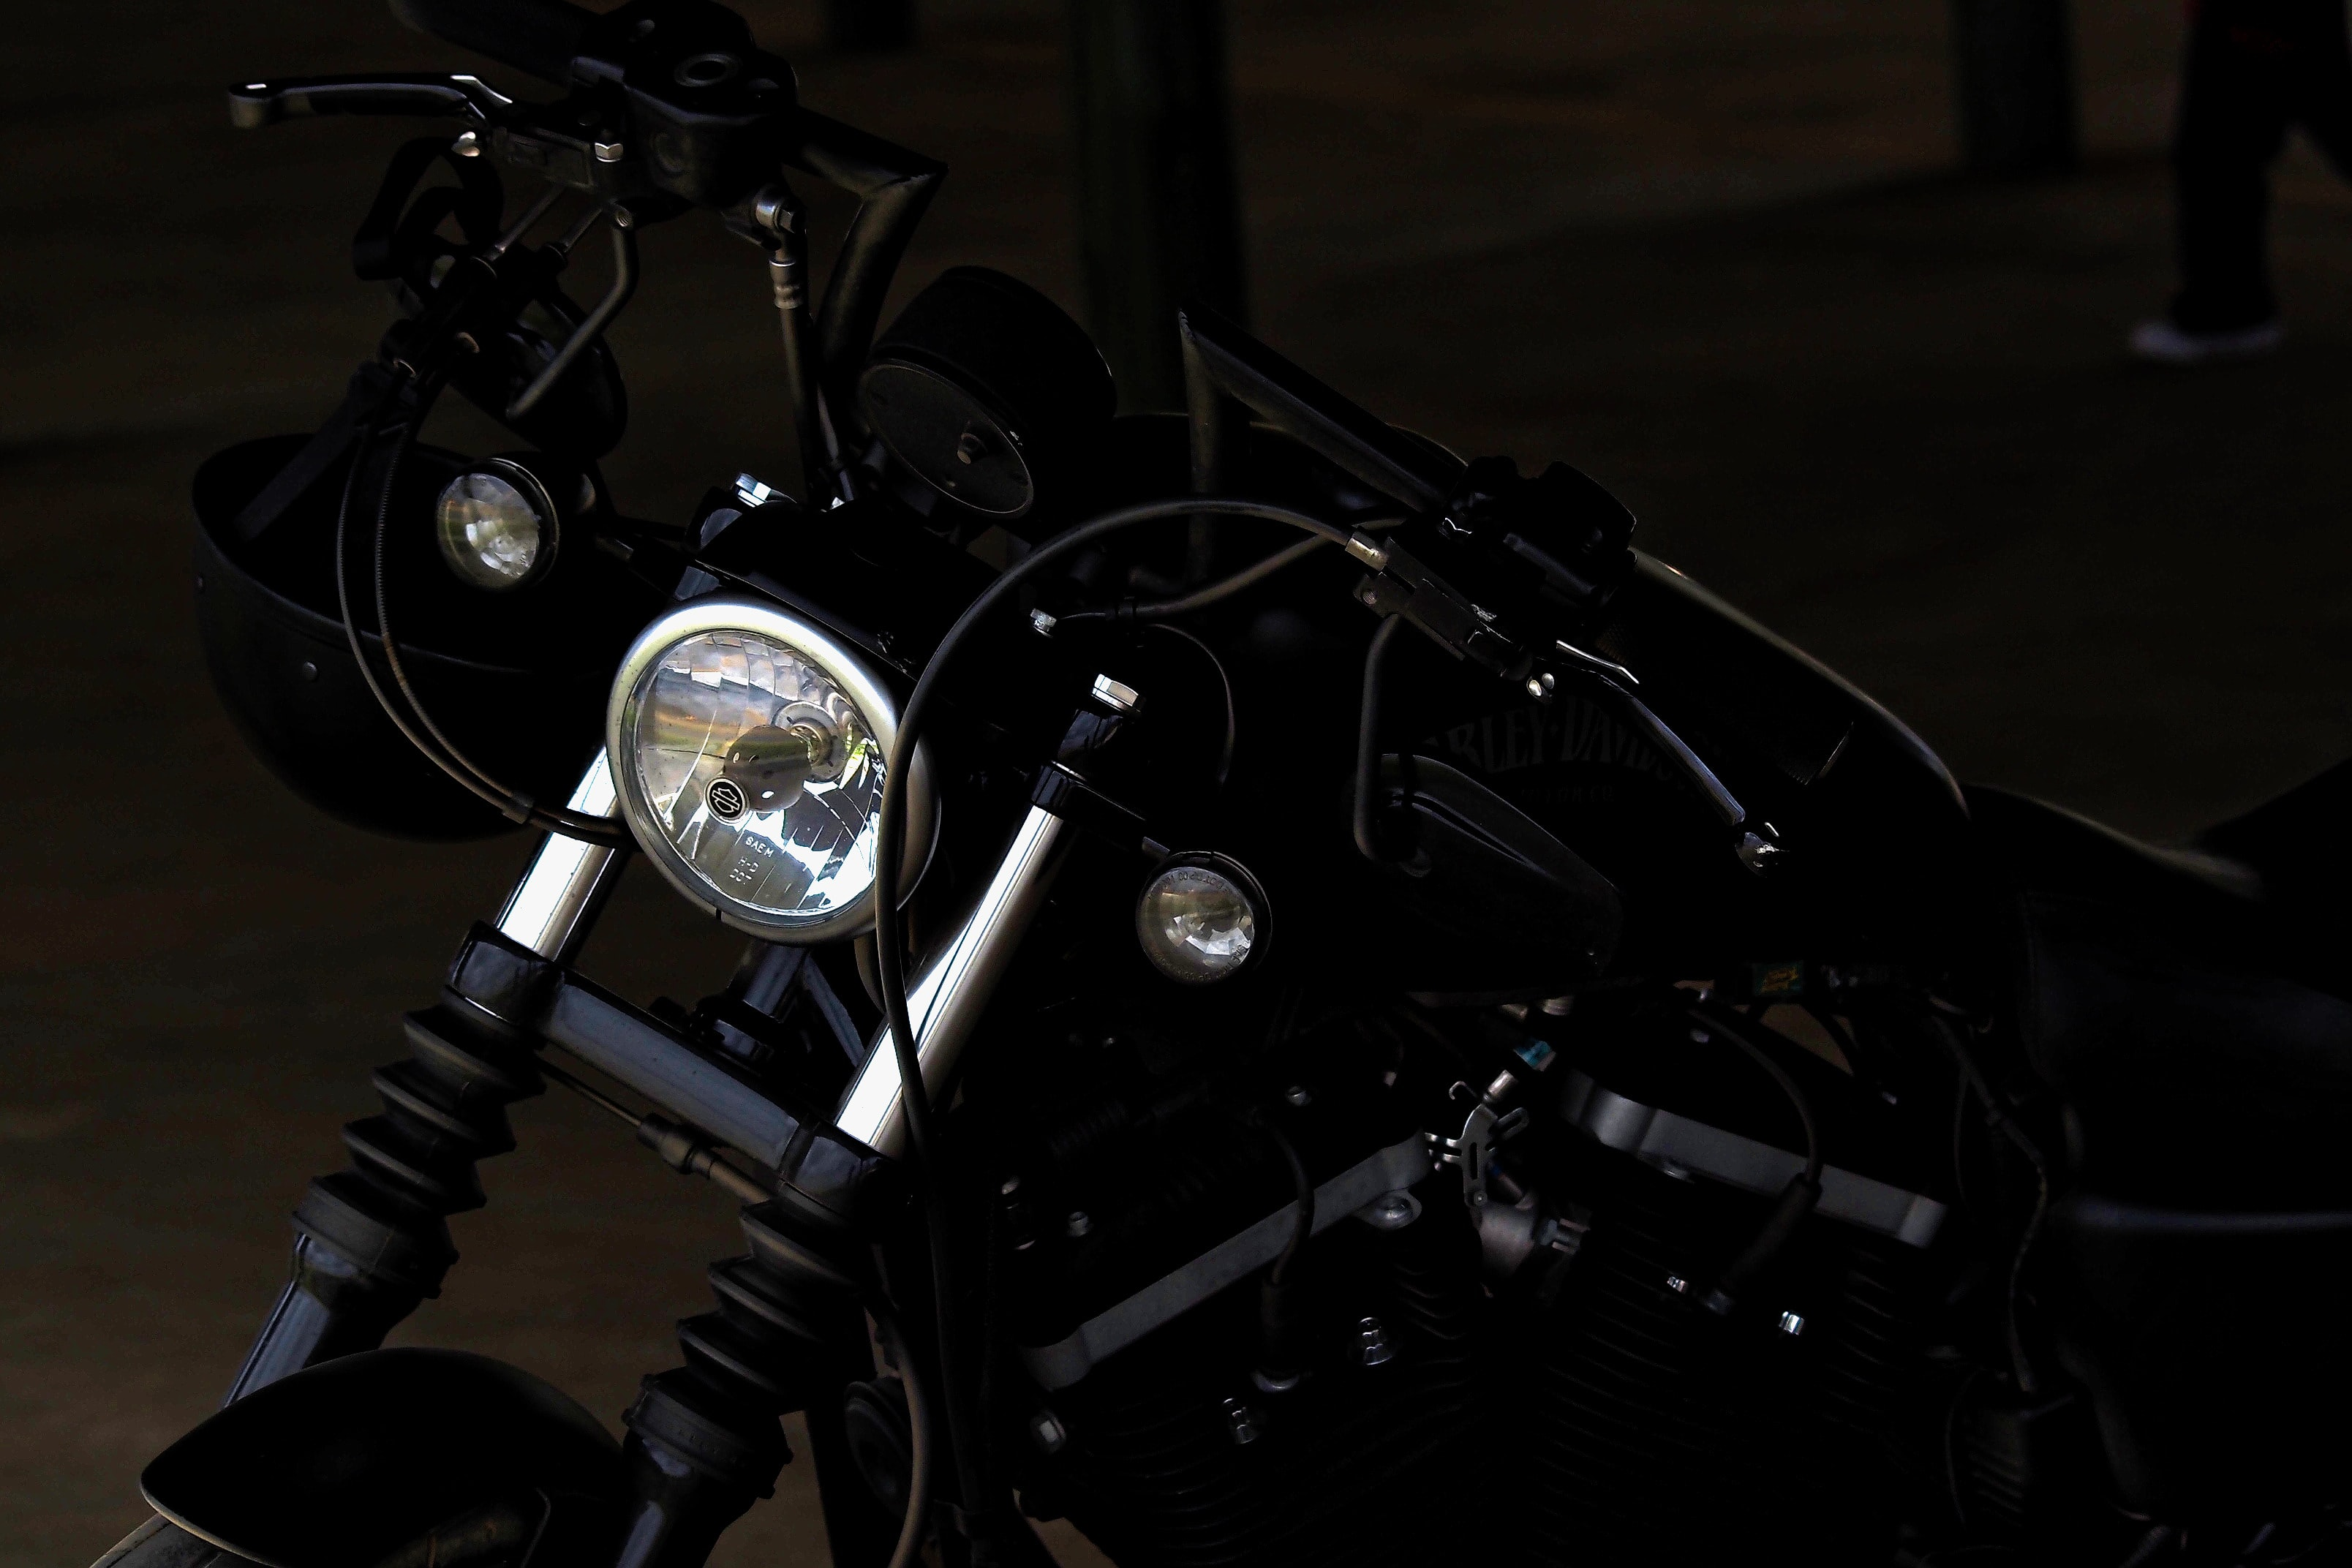 Black motorbike parked in a dark lot